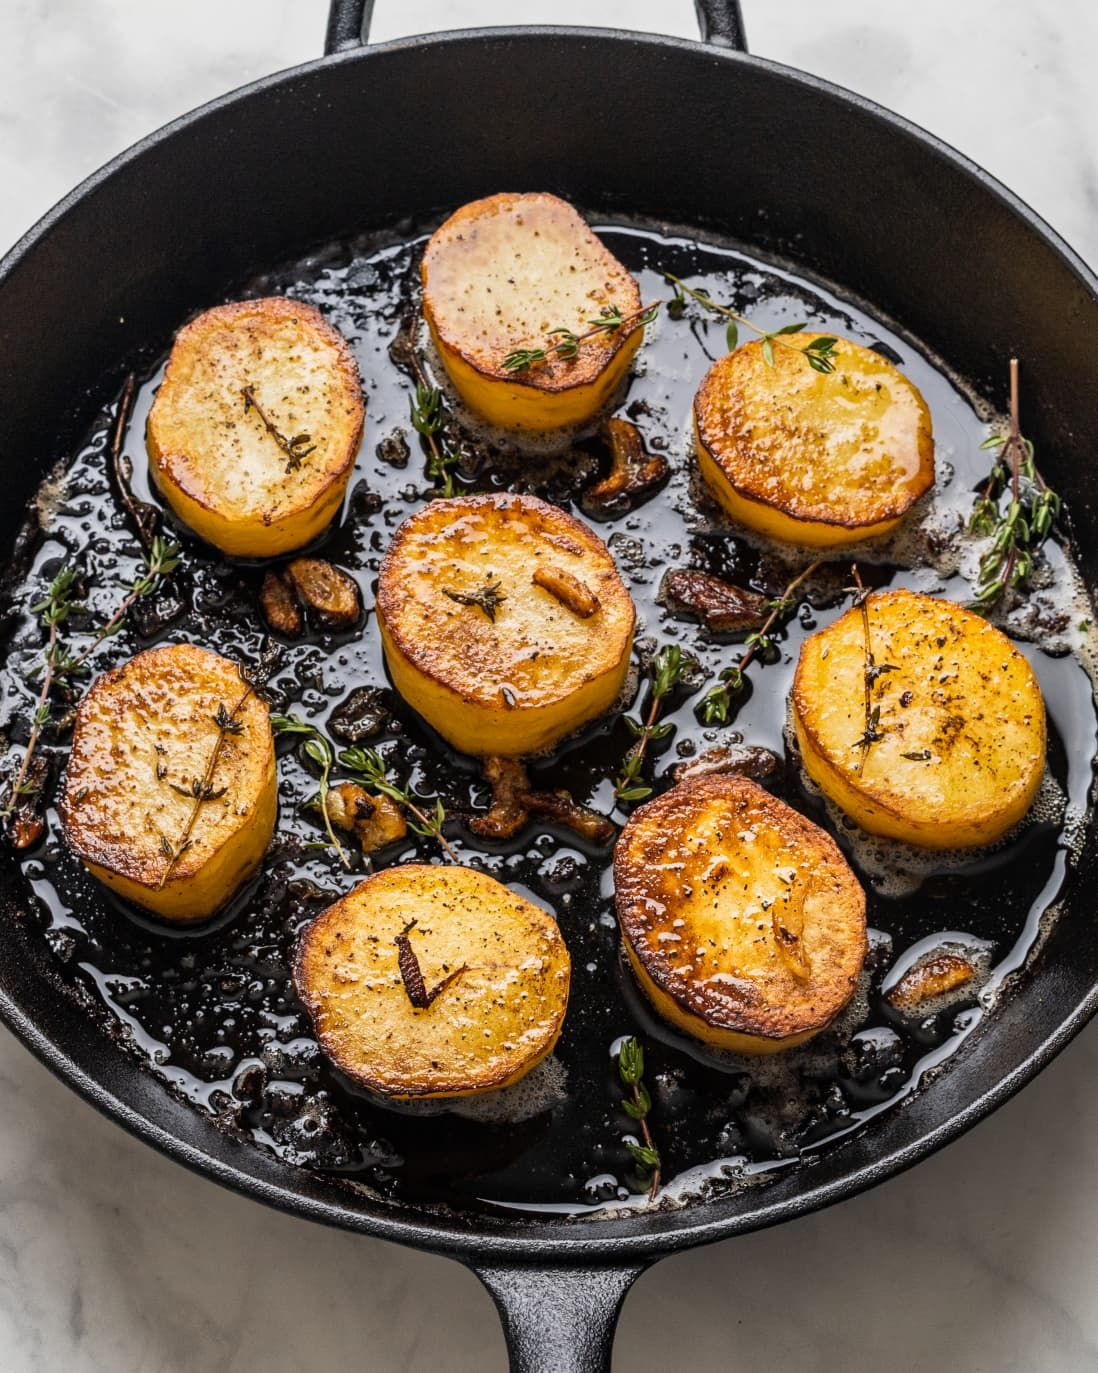 Fondant Potatoes Are The Fanciest Way To Prepare Potatoes Recipe Fondant Potatoes Recipes How To Cook Potatoes